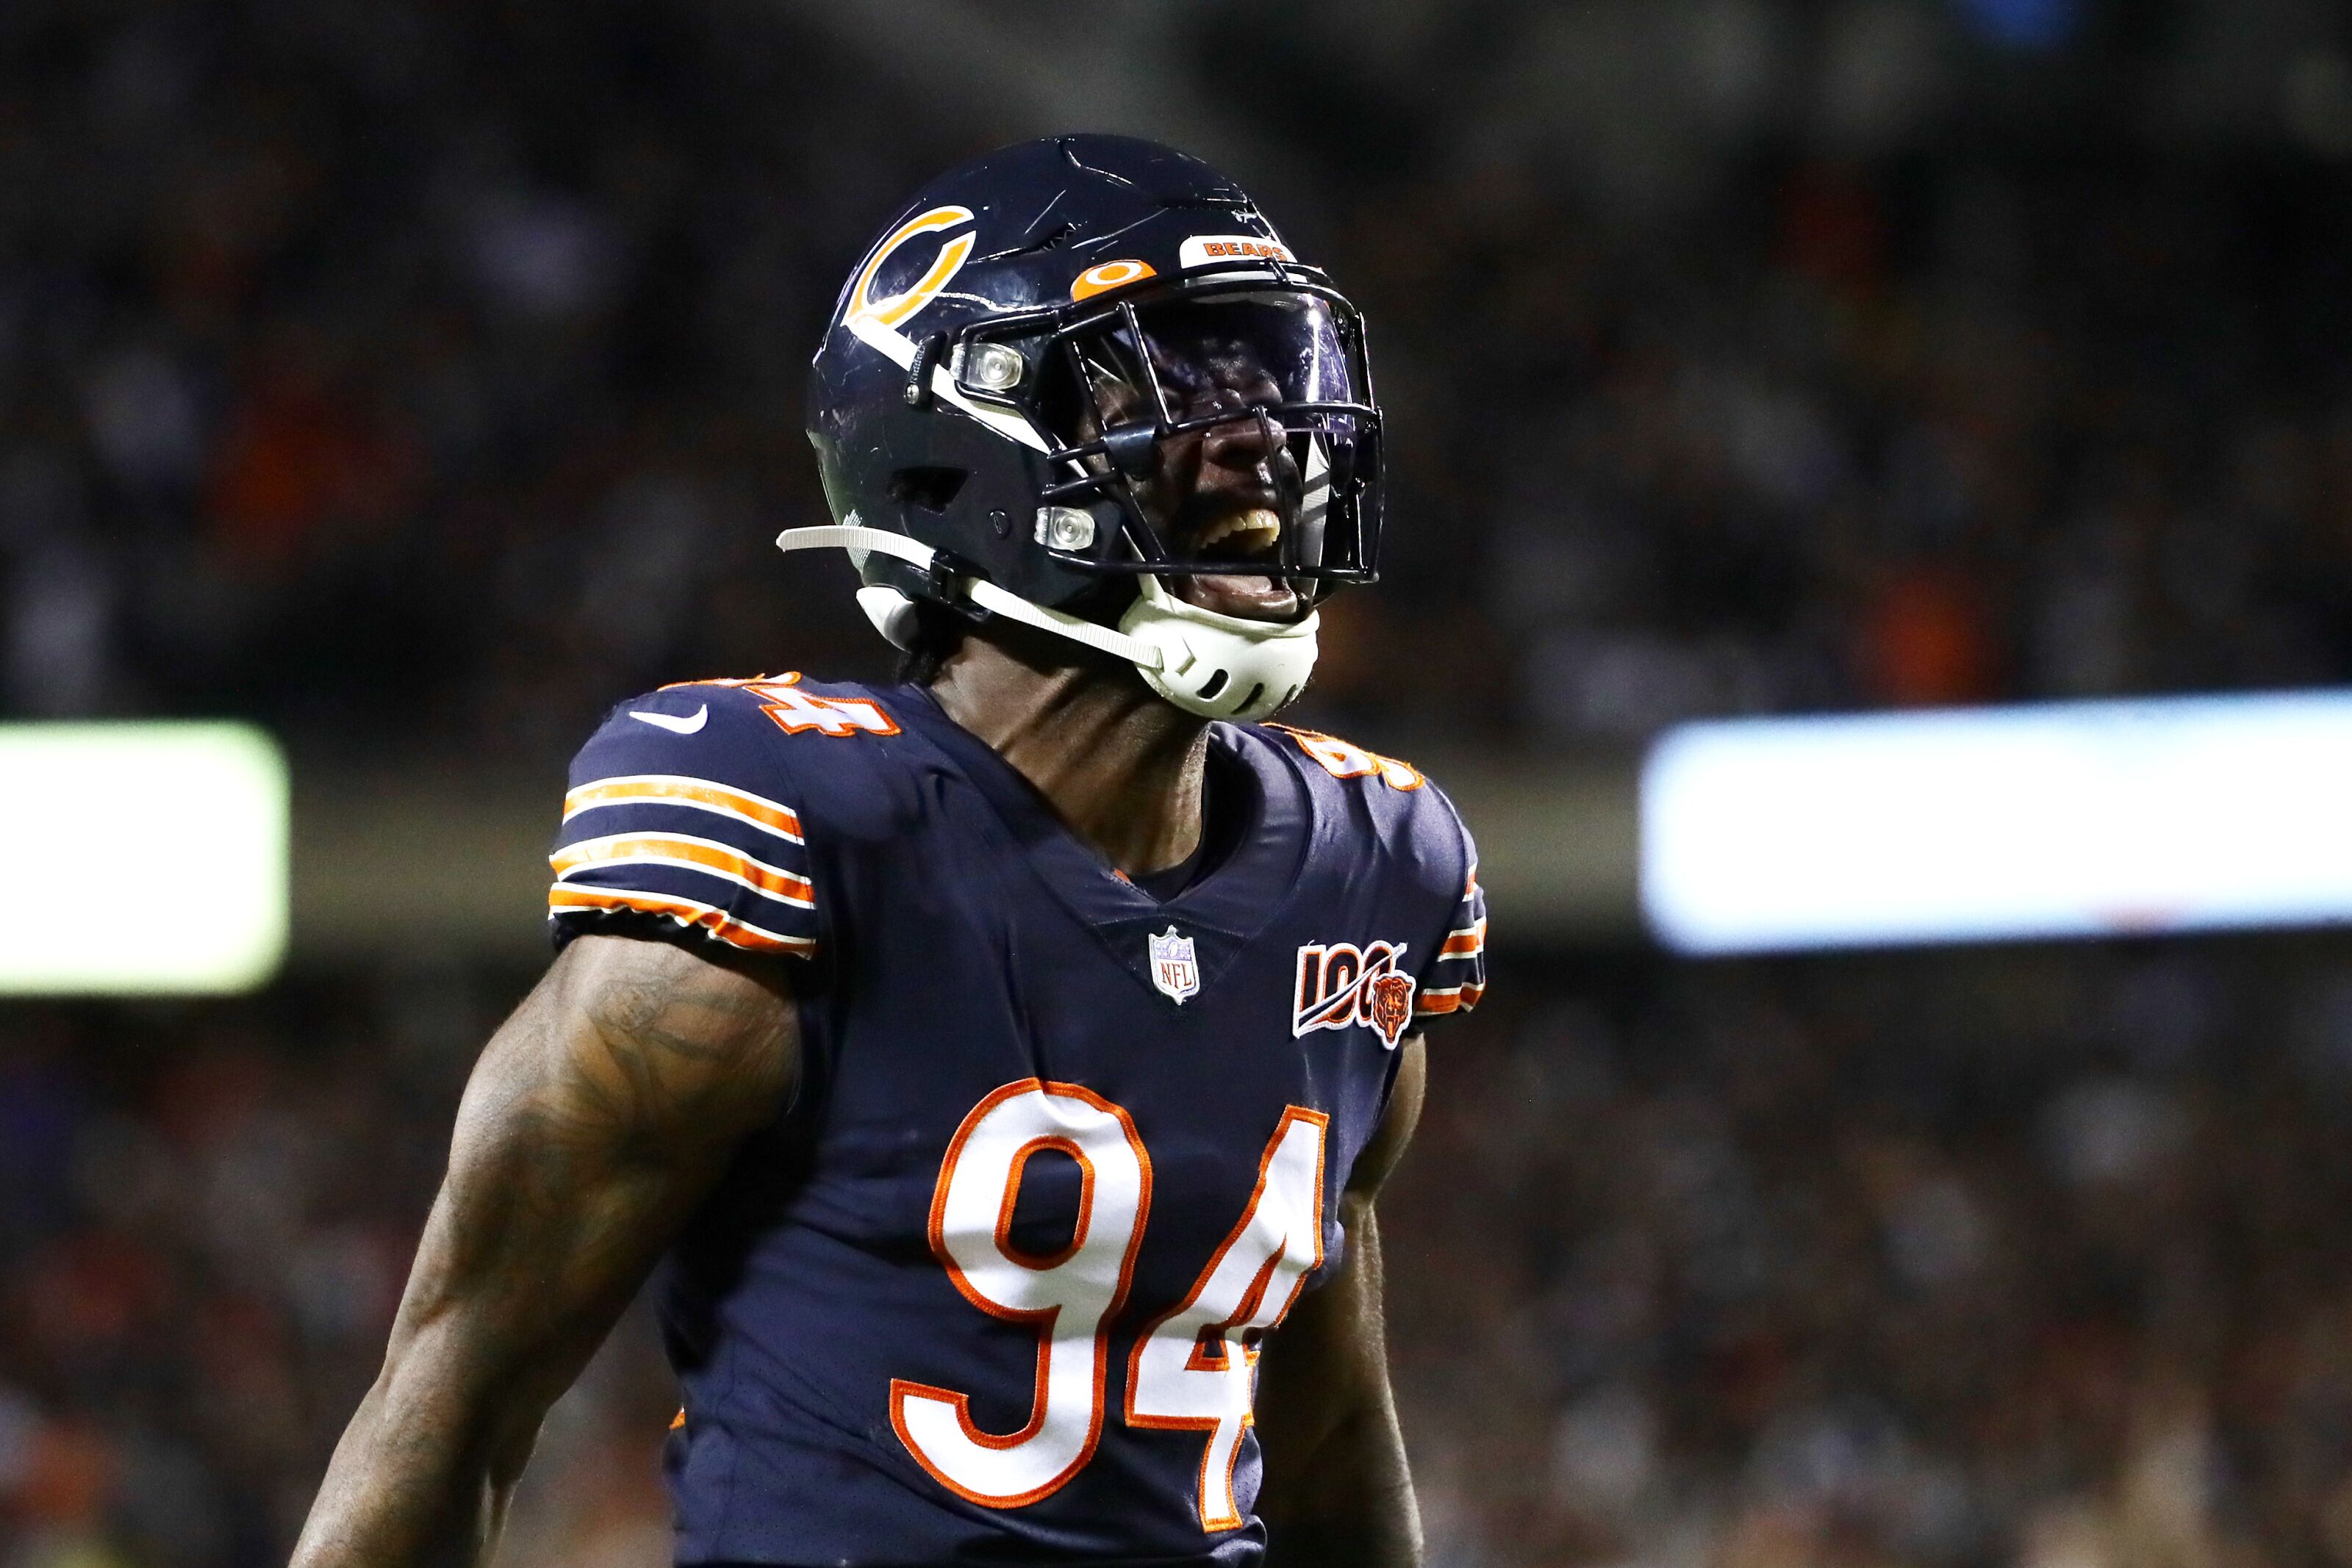 This should concern Chicago Bears fans about Leonard Floyd